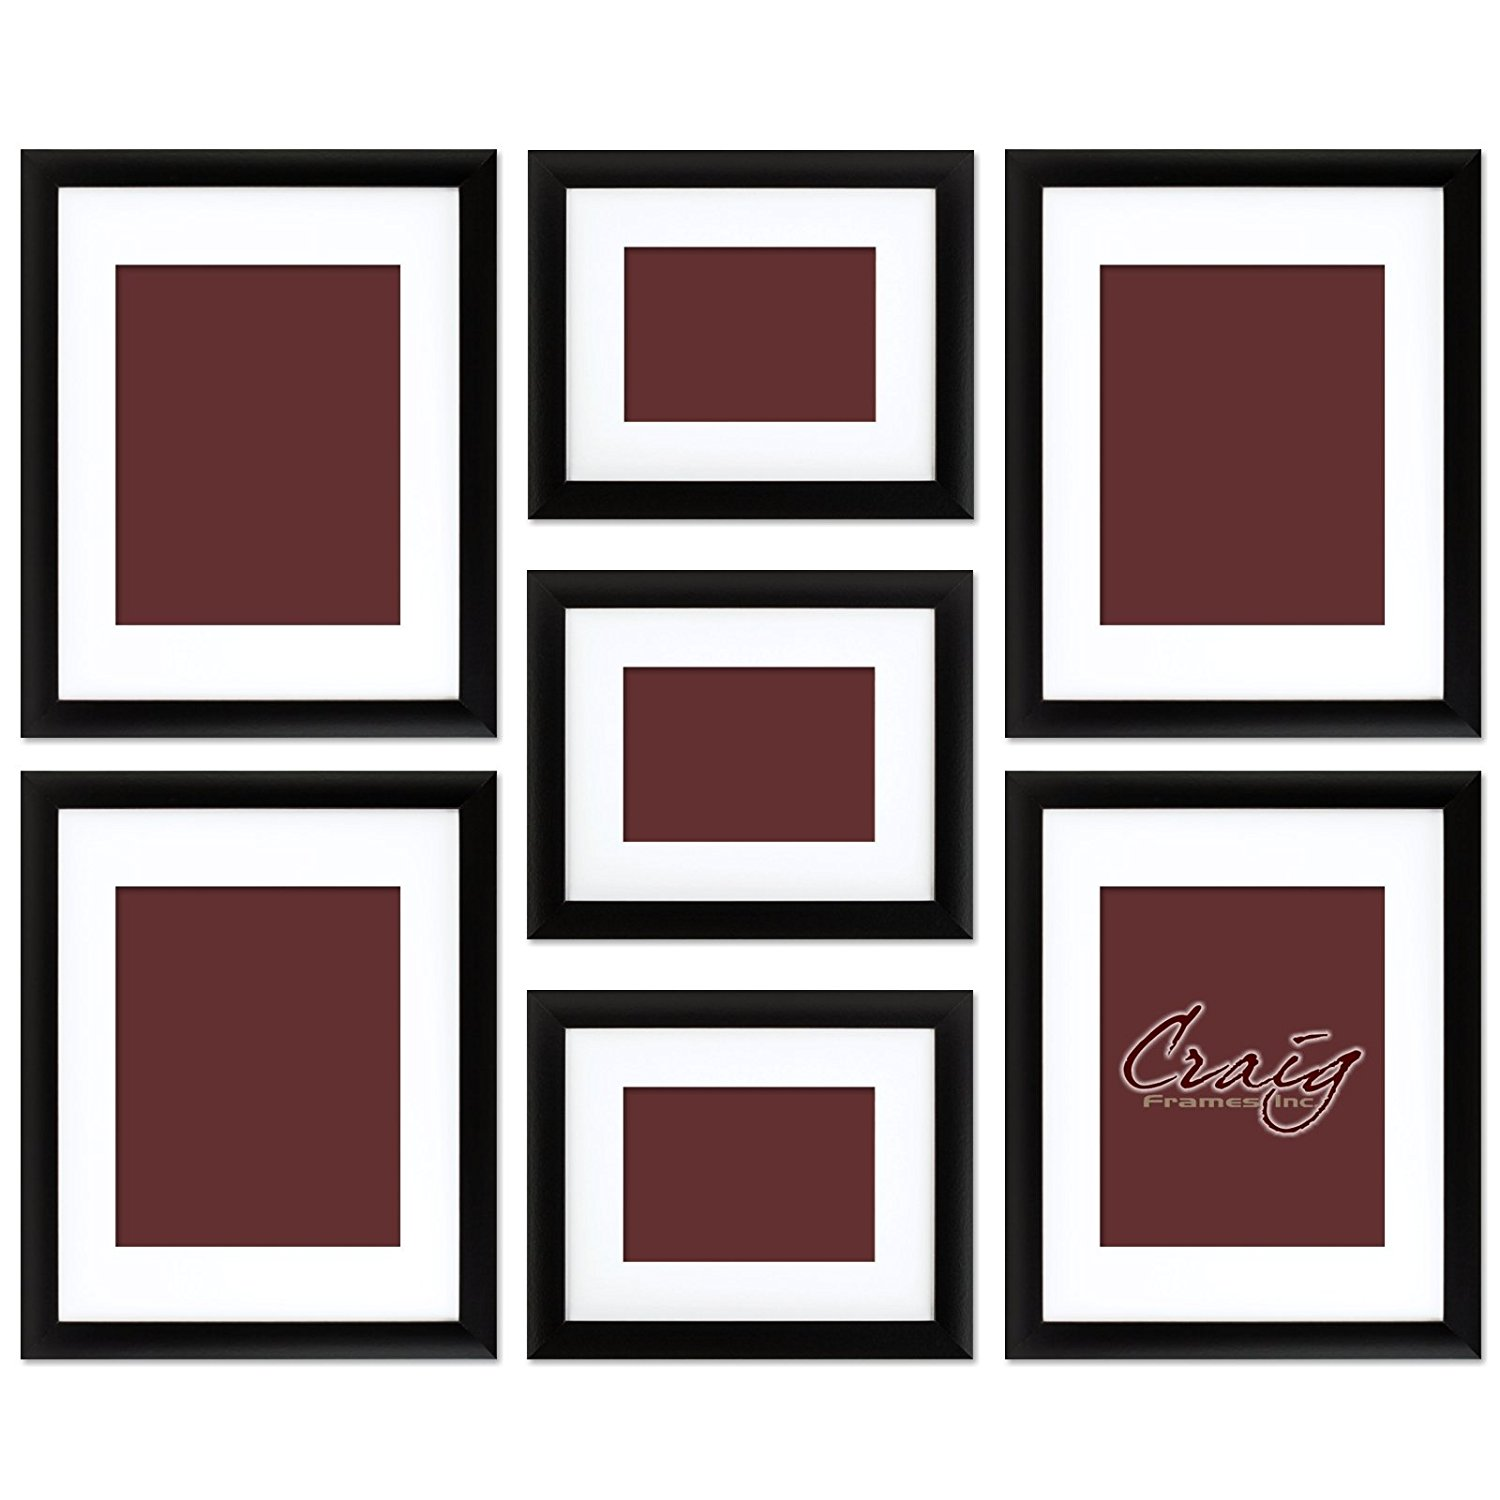 Craig Frames 1WB3BK Picture Frame 7-Piece Wall Set, Black Frames, White Display Mats, Picture Hanging Tool